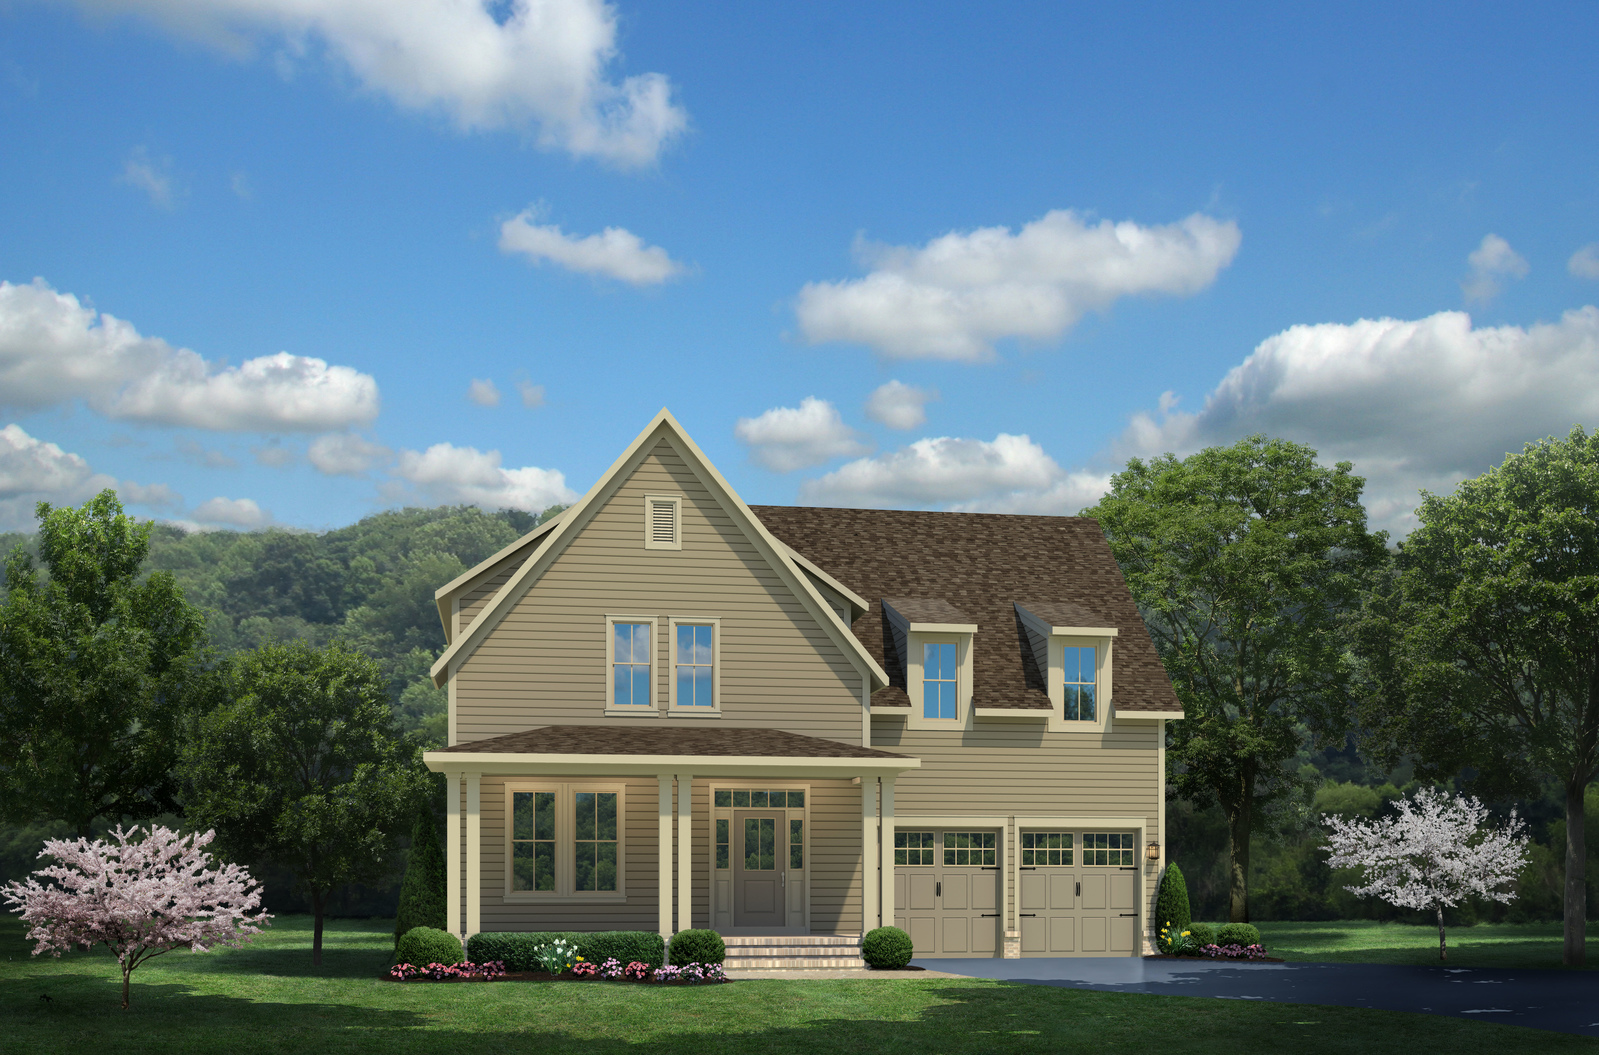 Berkeley at Potomac Shores Single-Family Homes